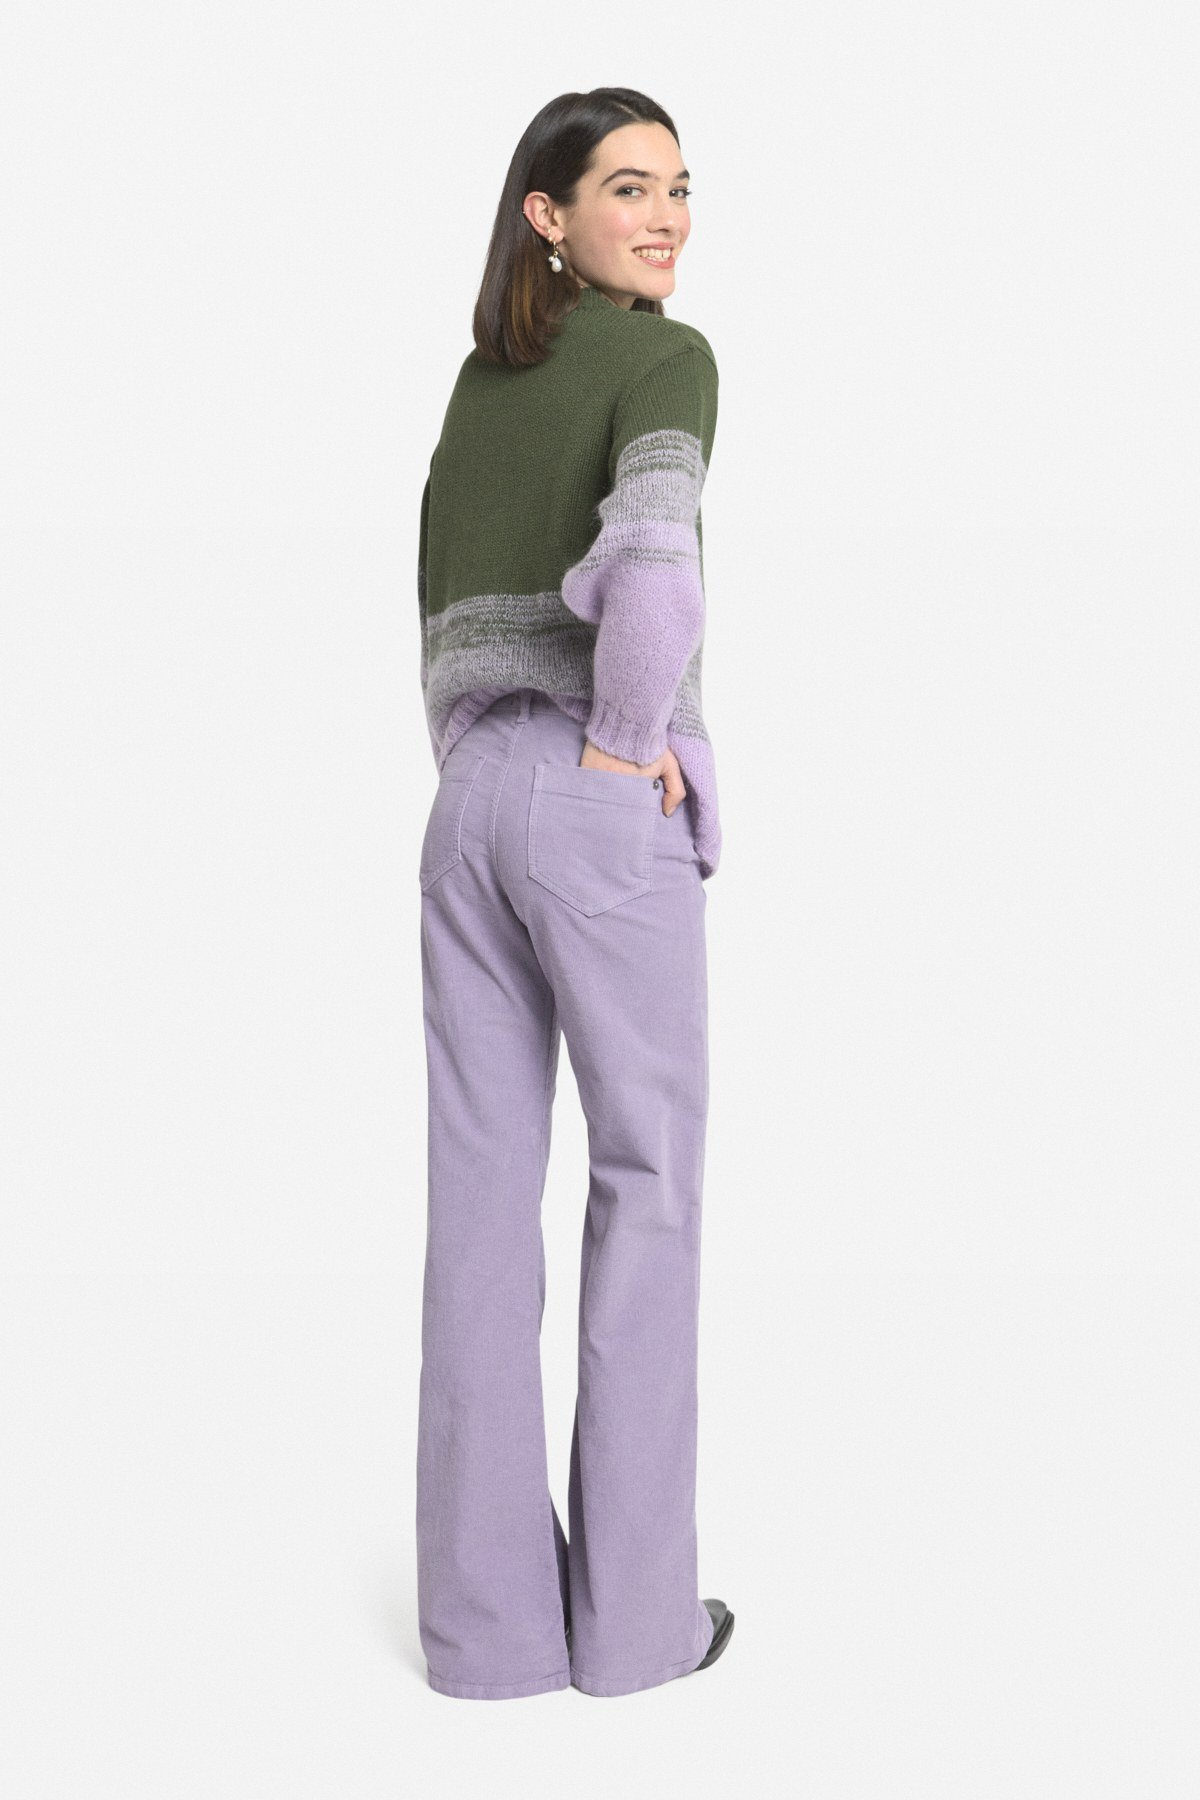 New French Pocket Jeans